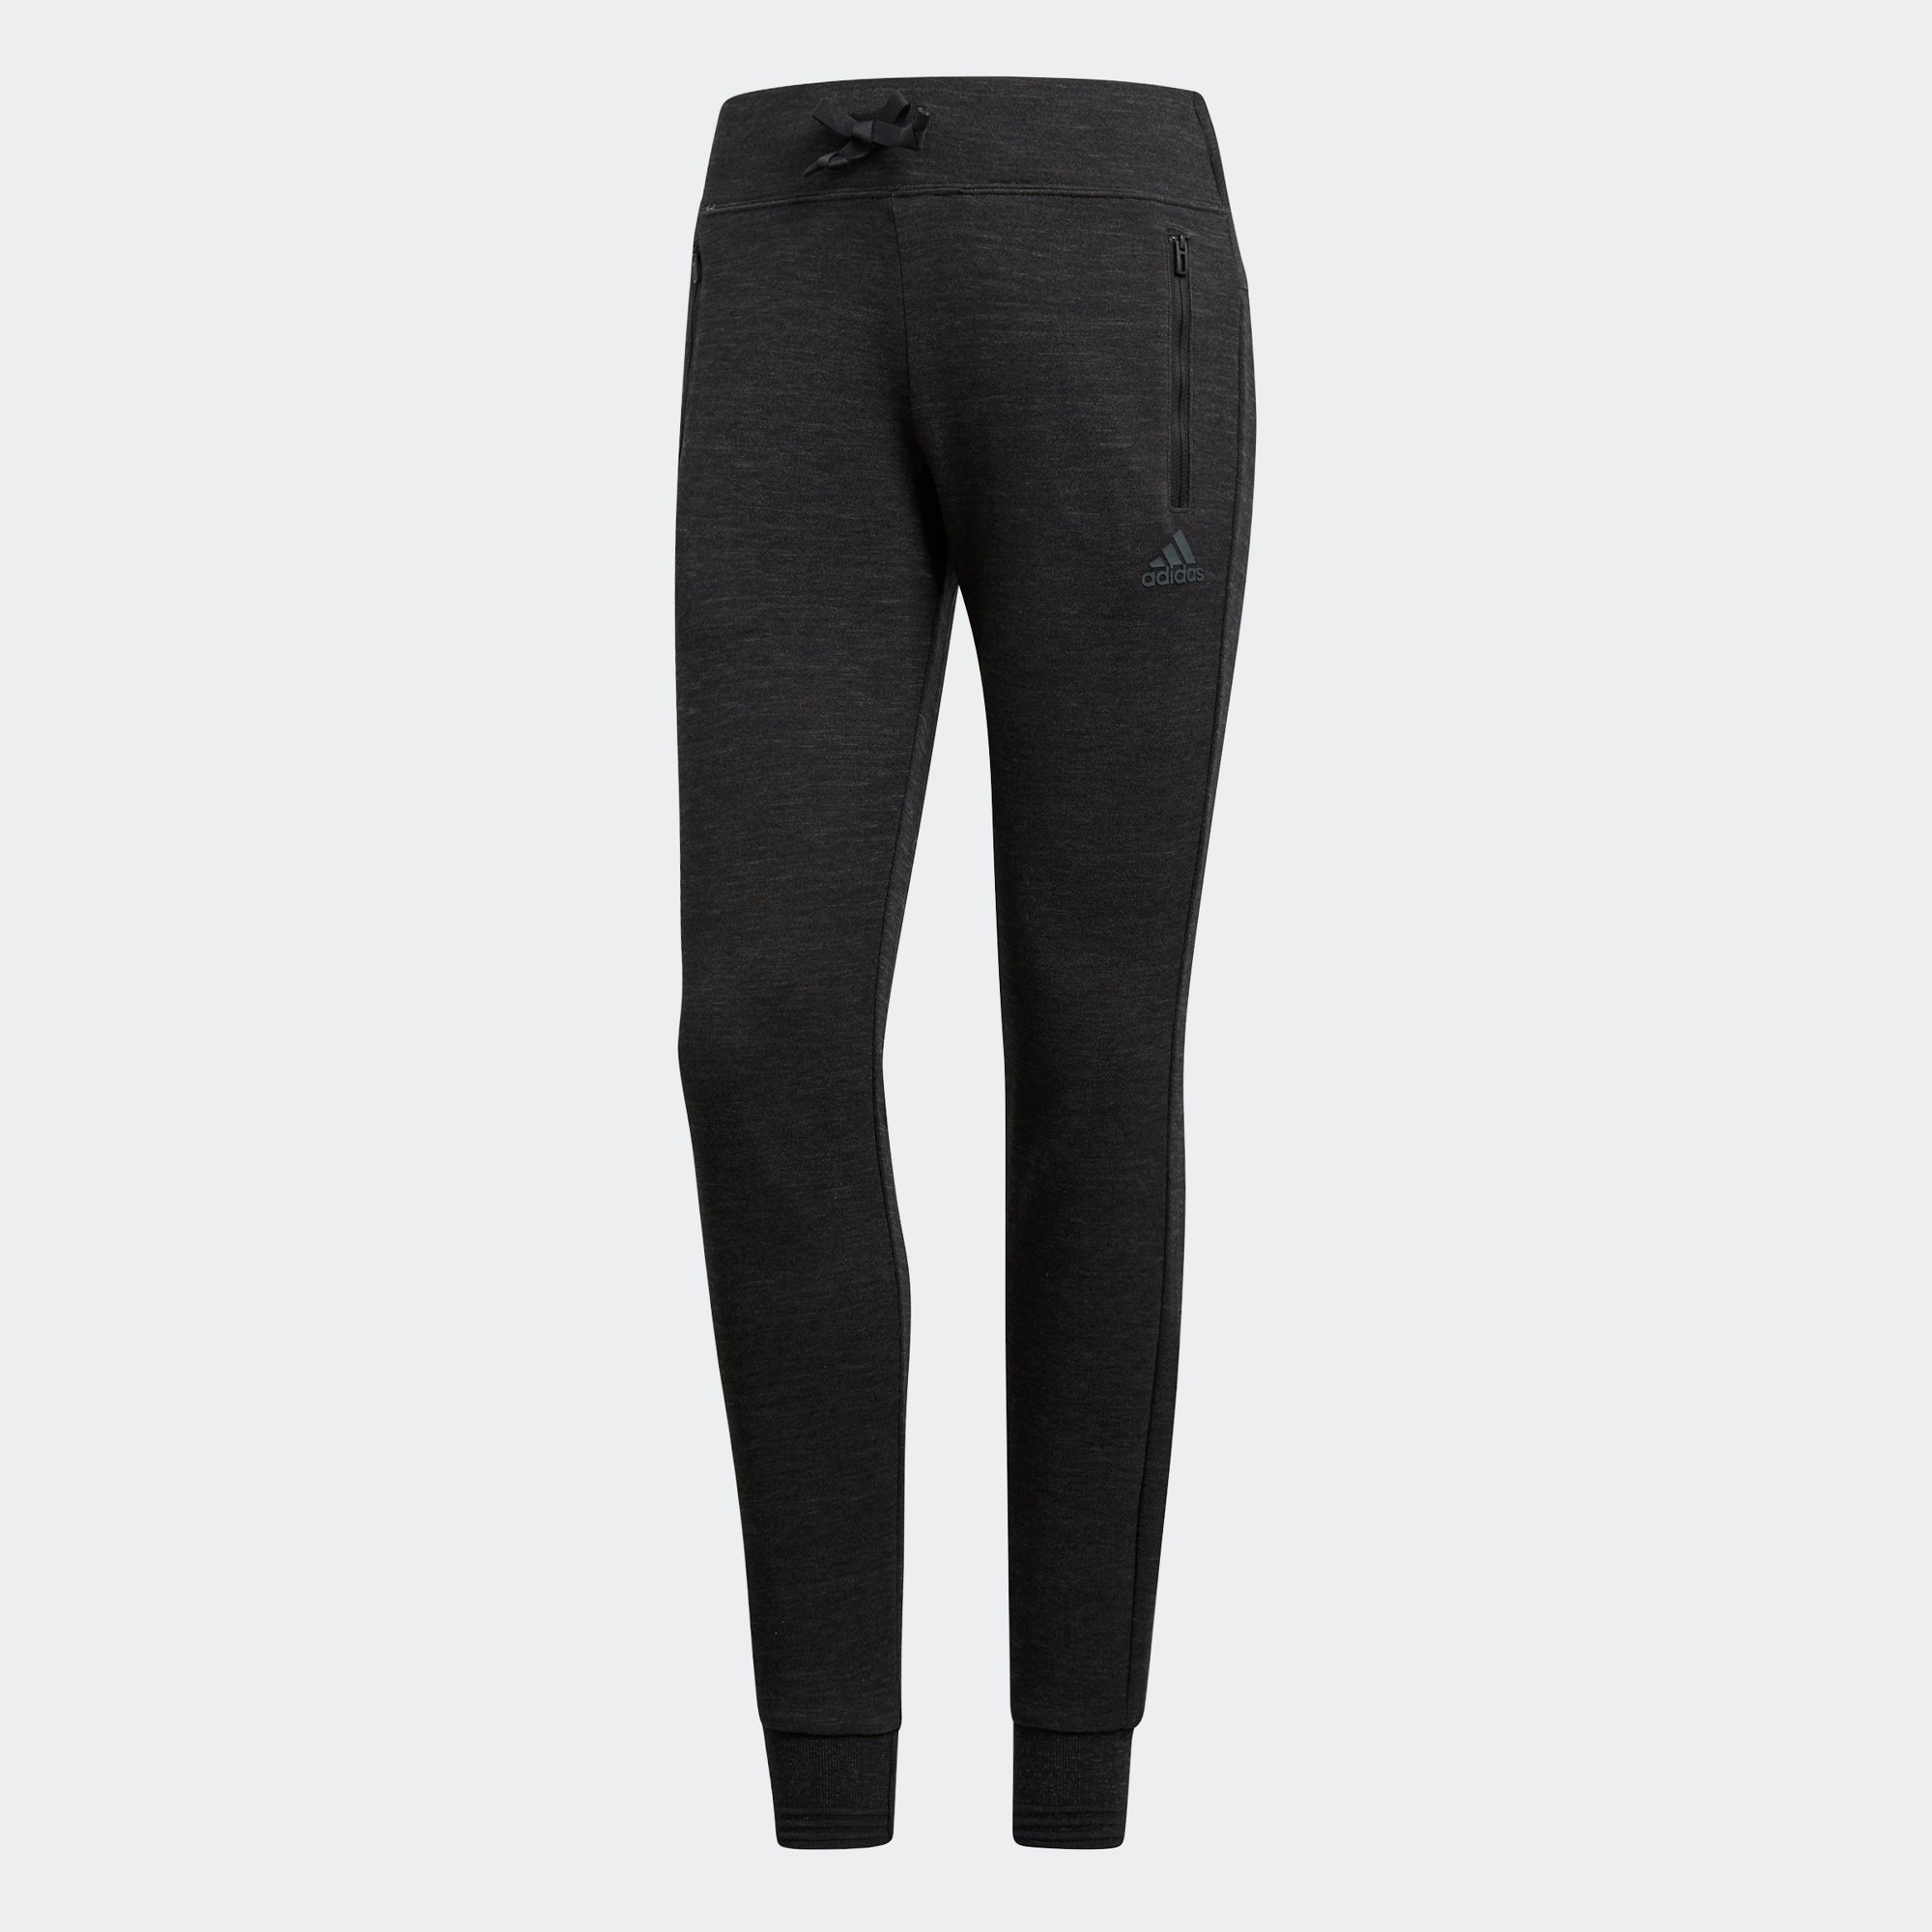 622a0263f9651 adidas ID Pants Black CZ2916 | Chicago City Sports